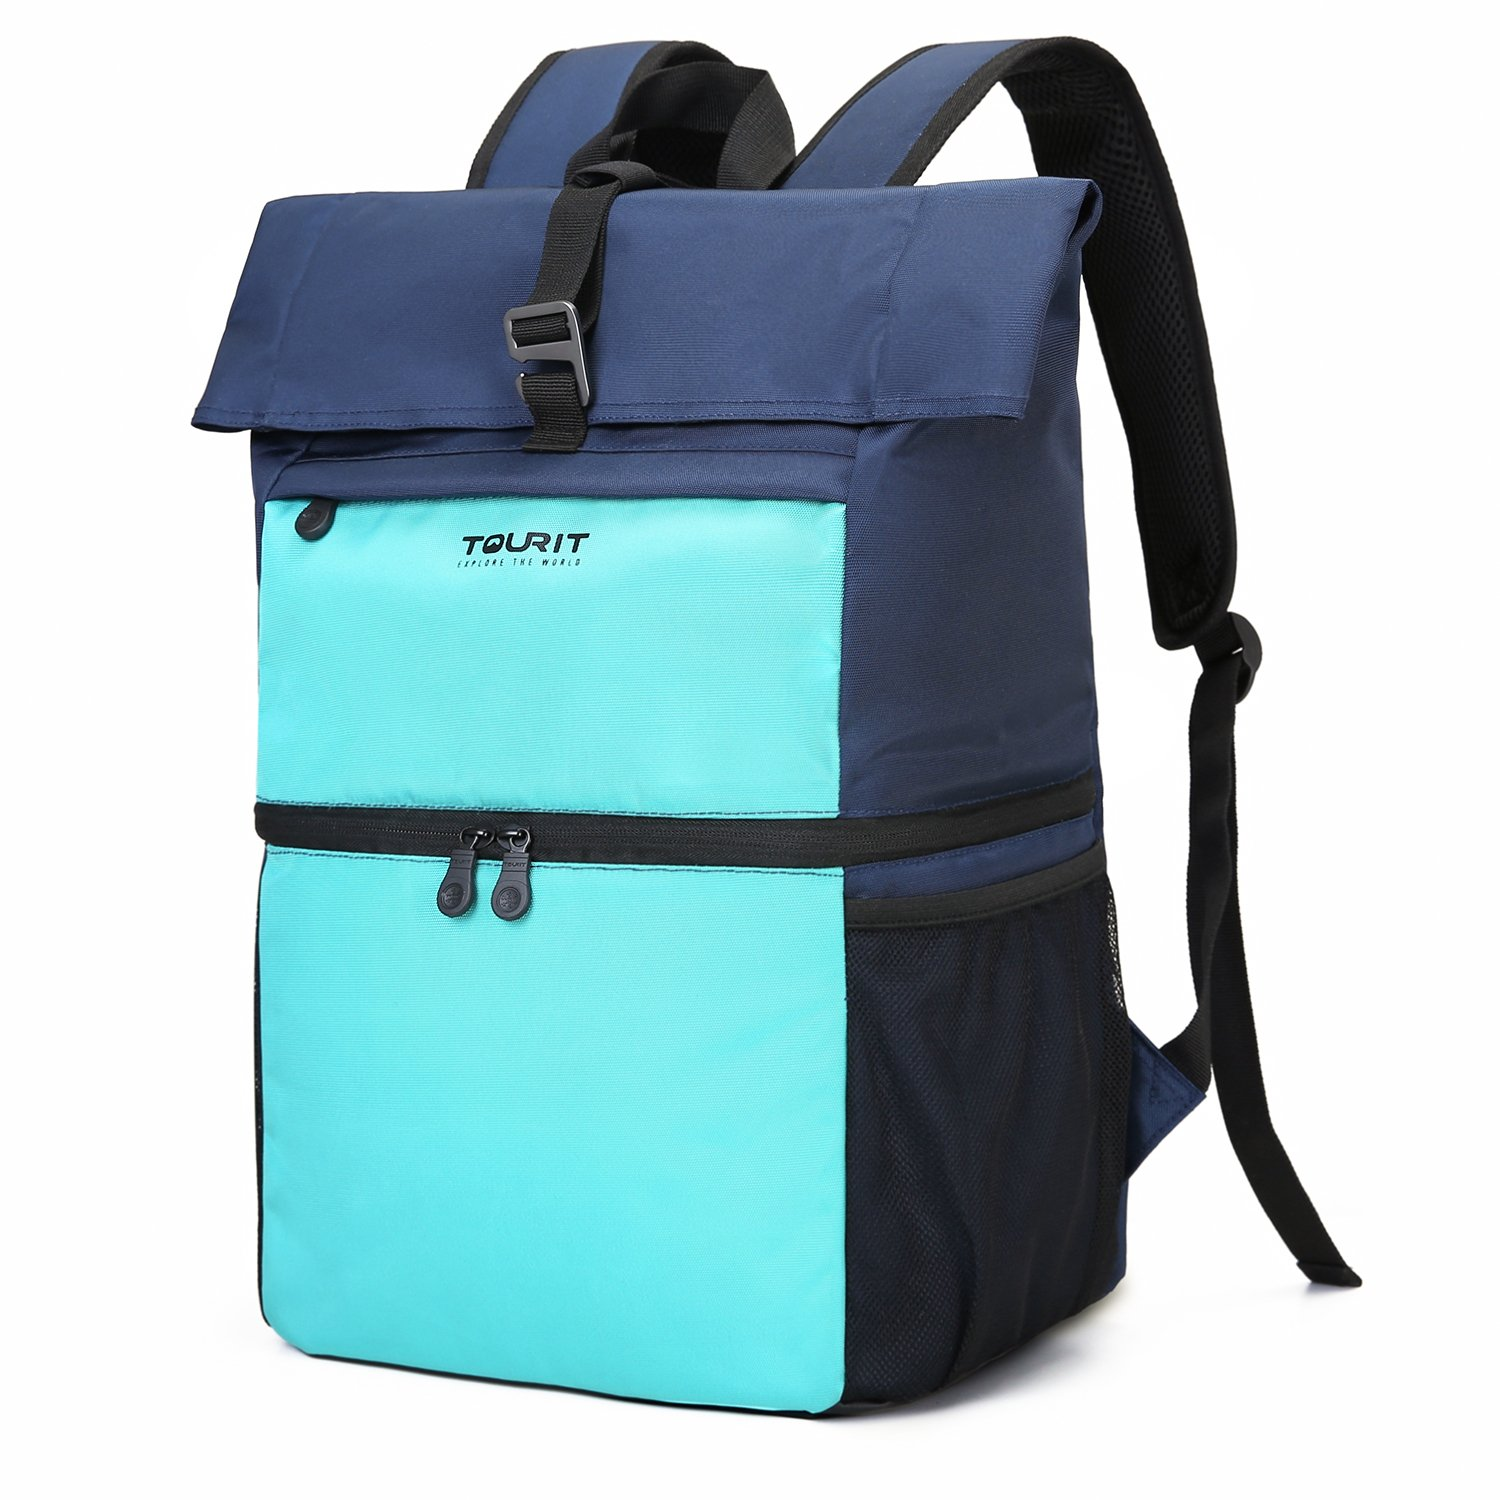 TOURIT Insulated Cooler Backpack Lunch Backpack Cooler Bag Light Backpack with Cooler for Men Women to Work, Picnics, Hiking, Camping, Beach, Park or Day Trips